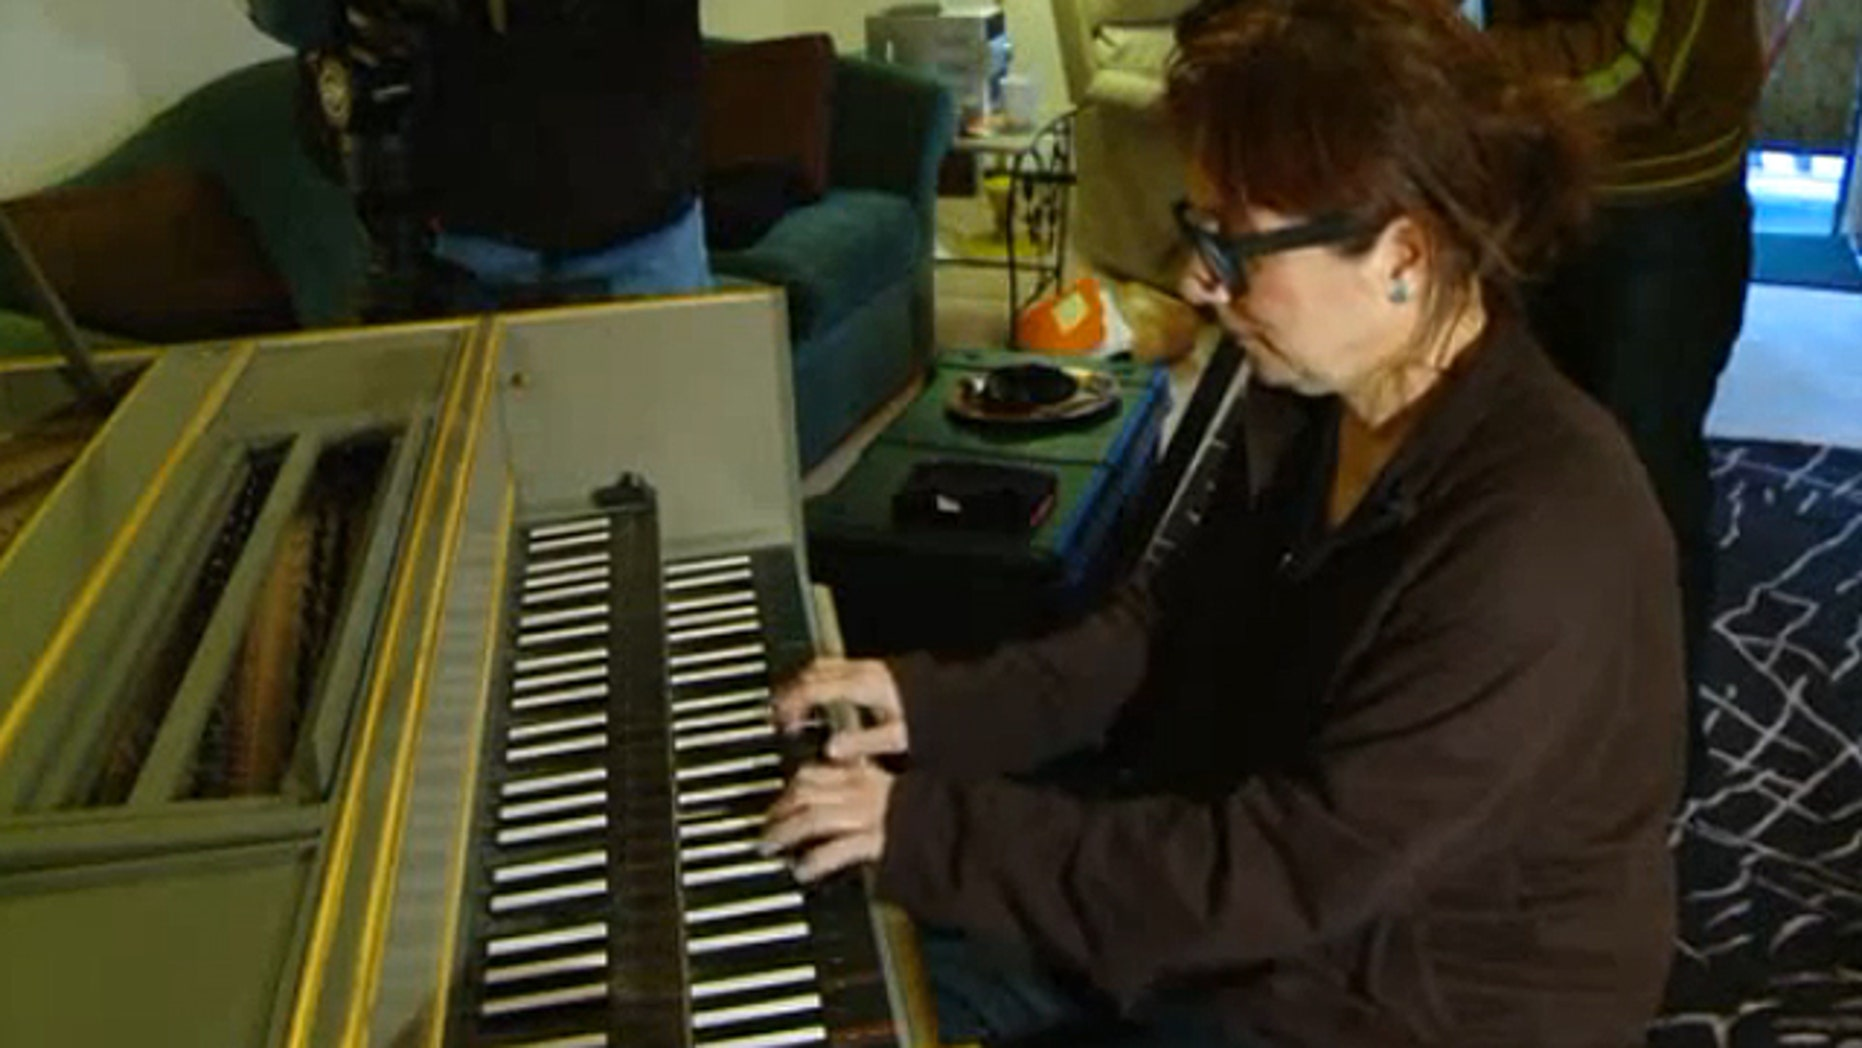 Barbara Cadranel, an internationally-renown harpsichordist living in Stratford, Conn., contacted the Connecticut Regional Office of the Anti-Defamation League earlier this month to report that she had been told by the California Condo Association to remove her mezuzah.